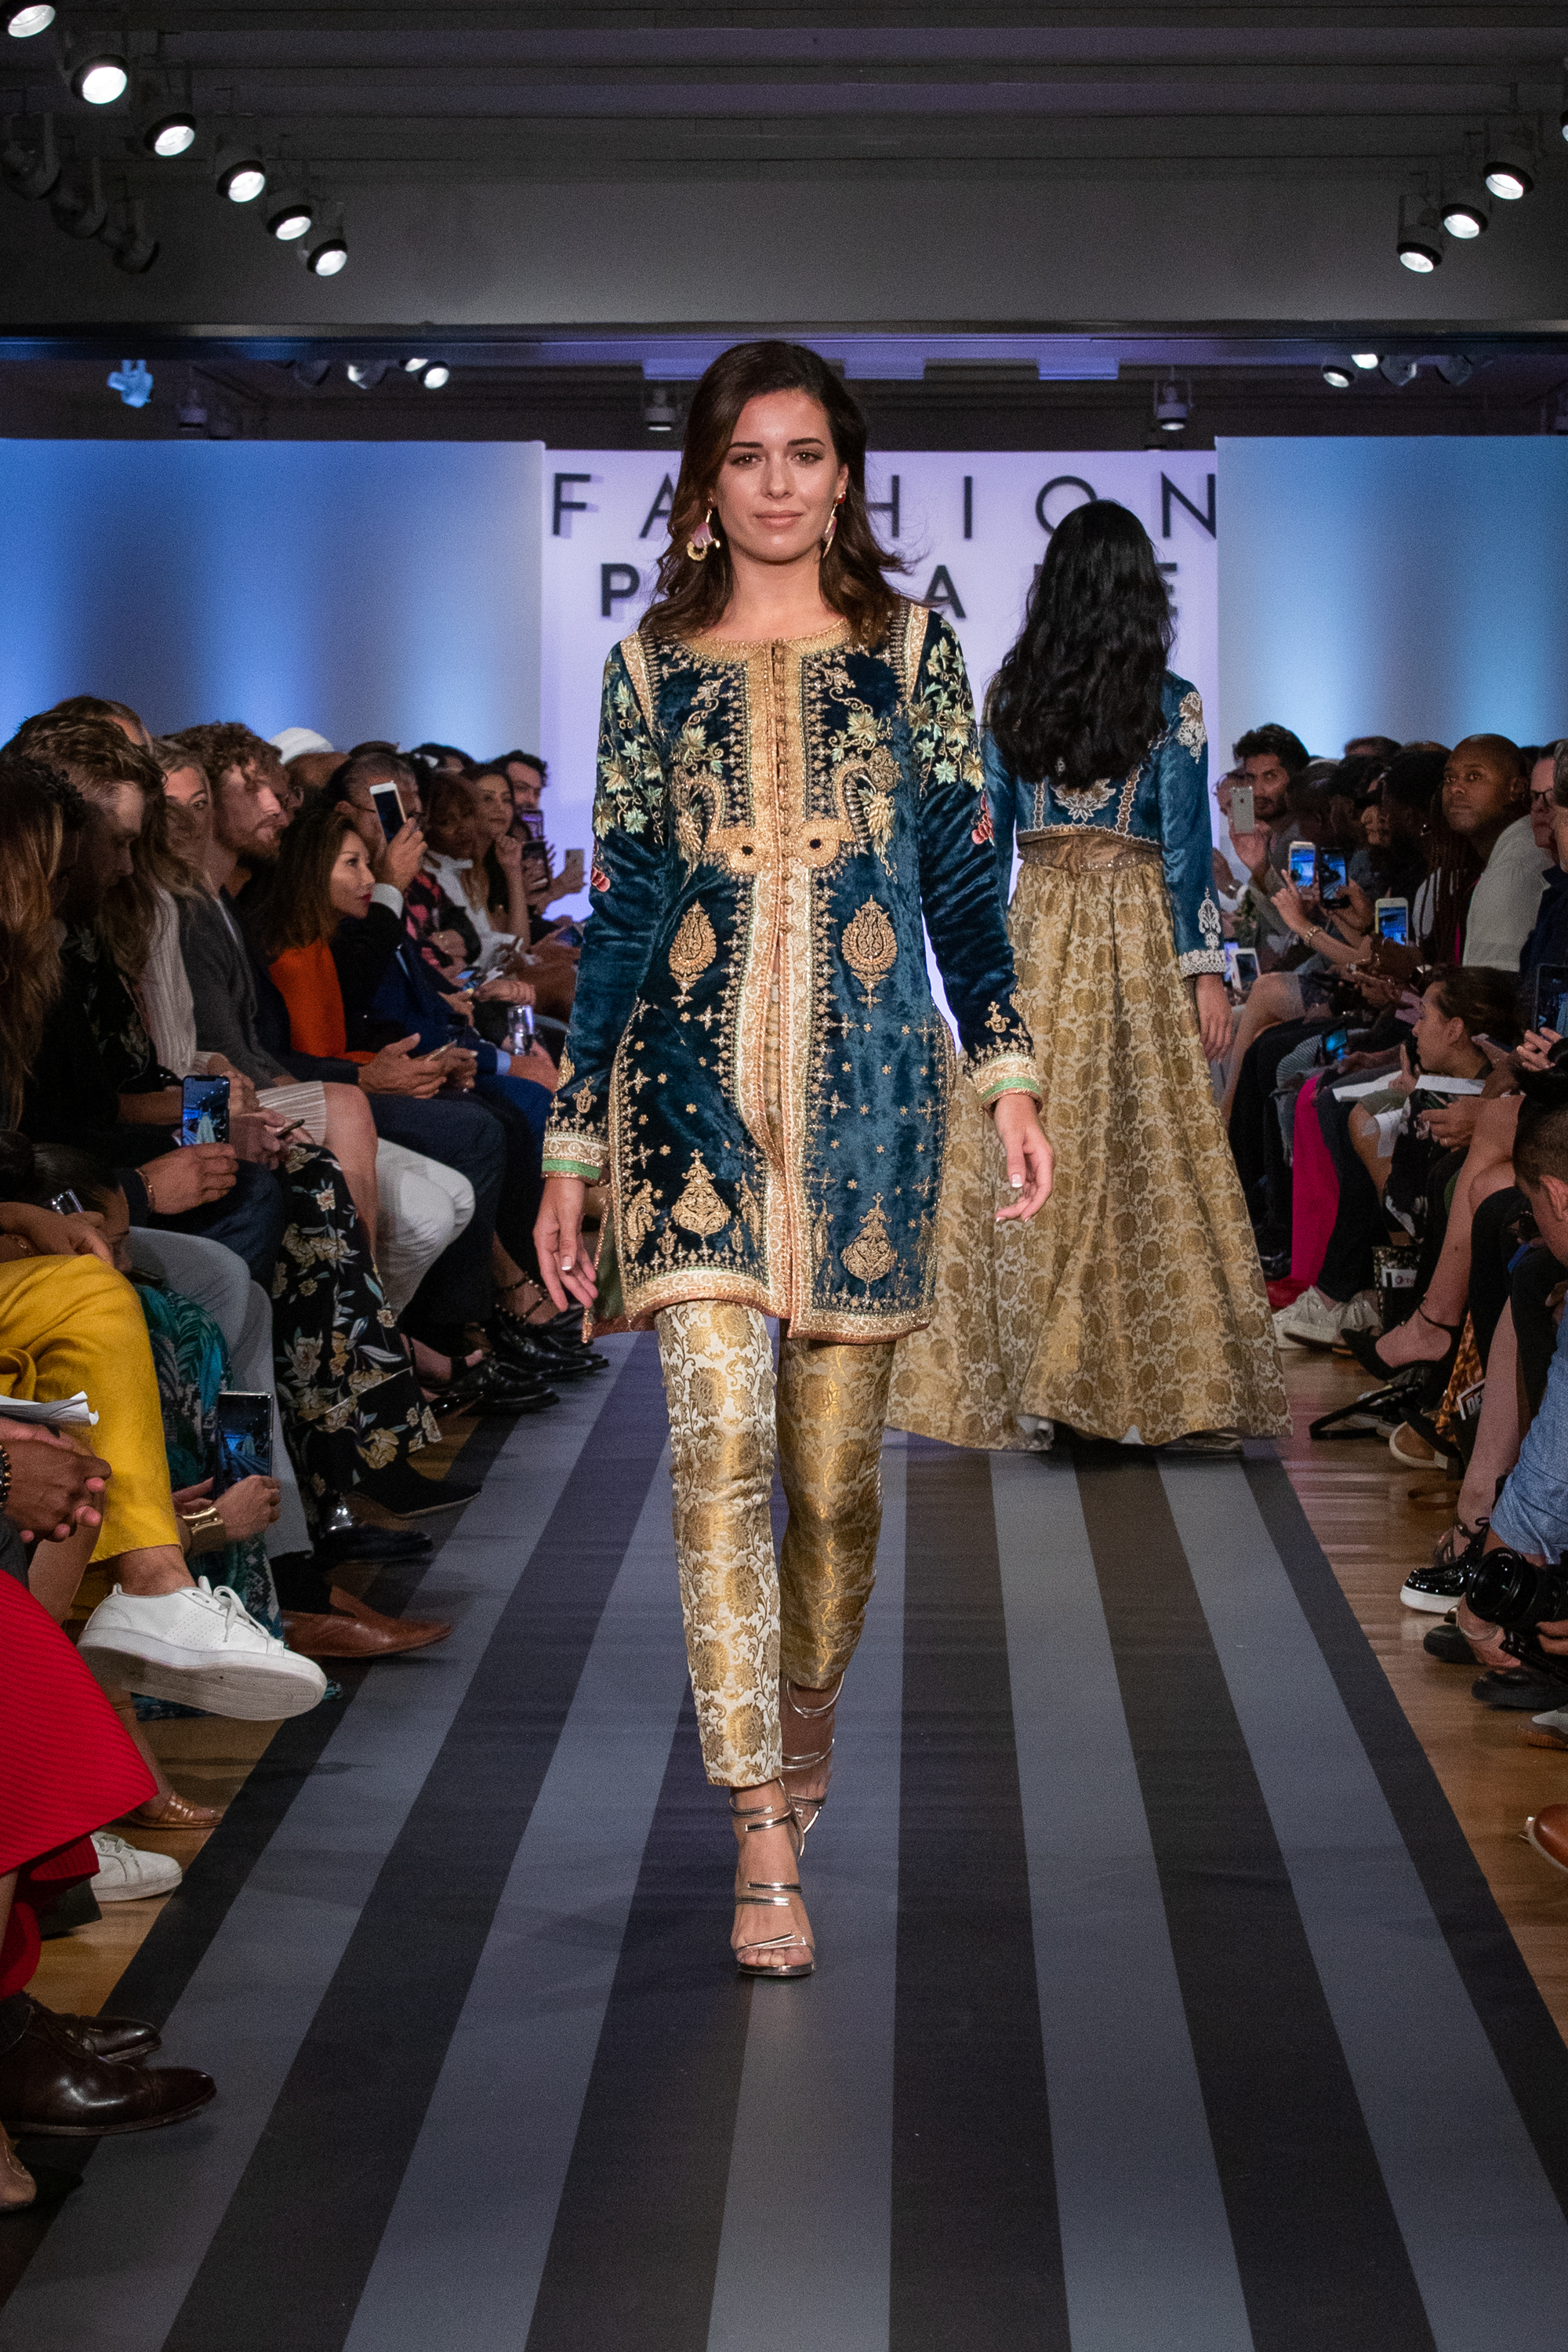 Fashion Parade Debuts In Usa An International Cultural Fashion Event News India Times